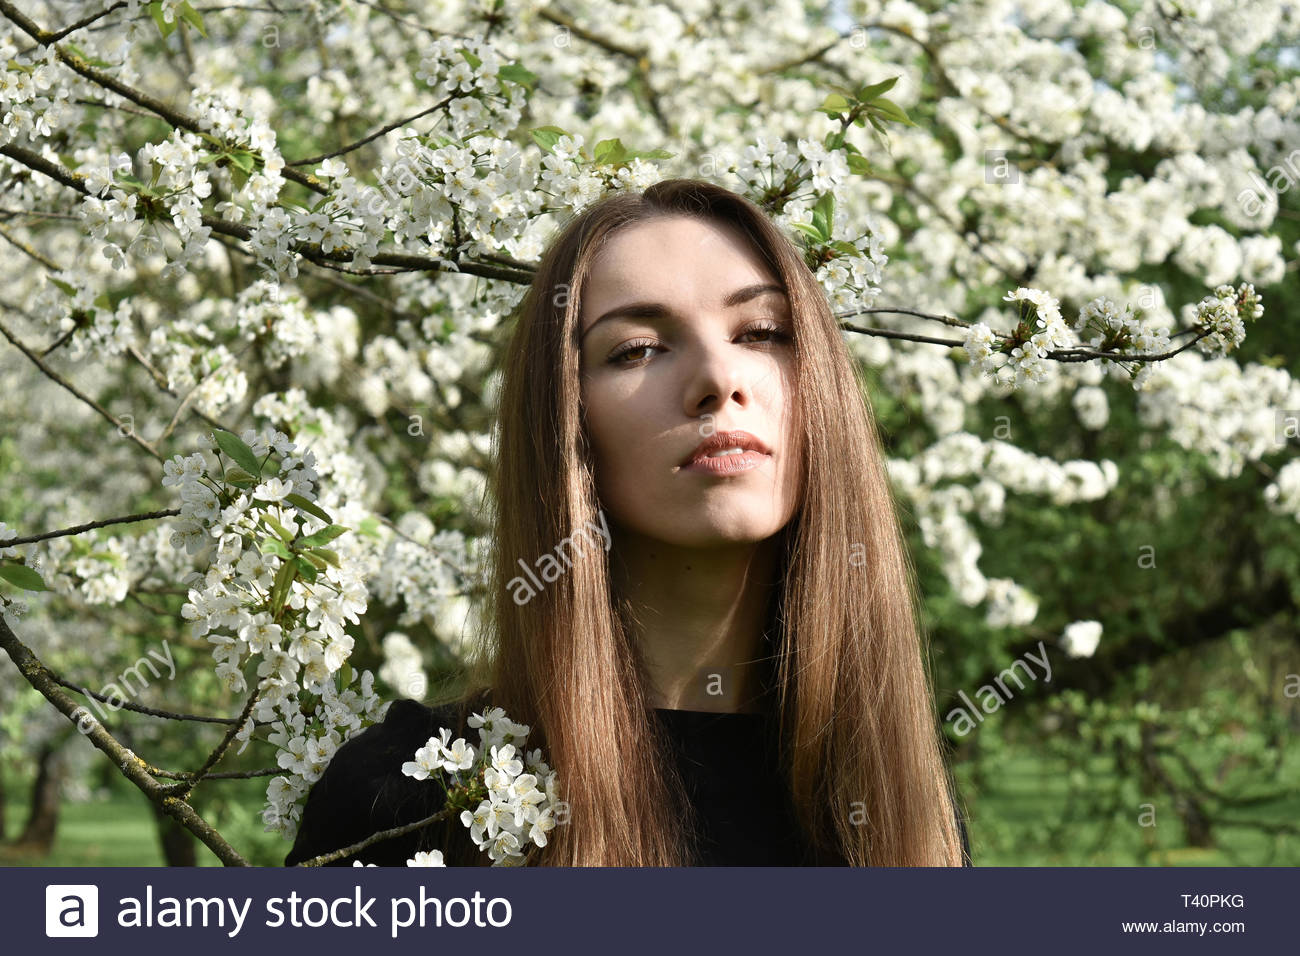 woman seriously posing for photo Stock Photo